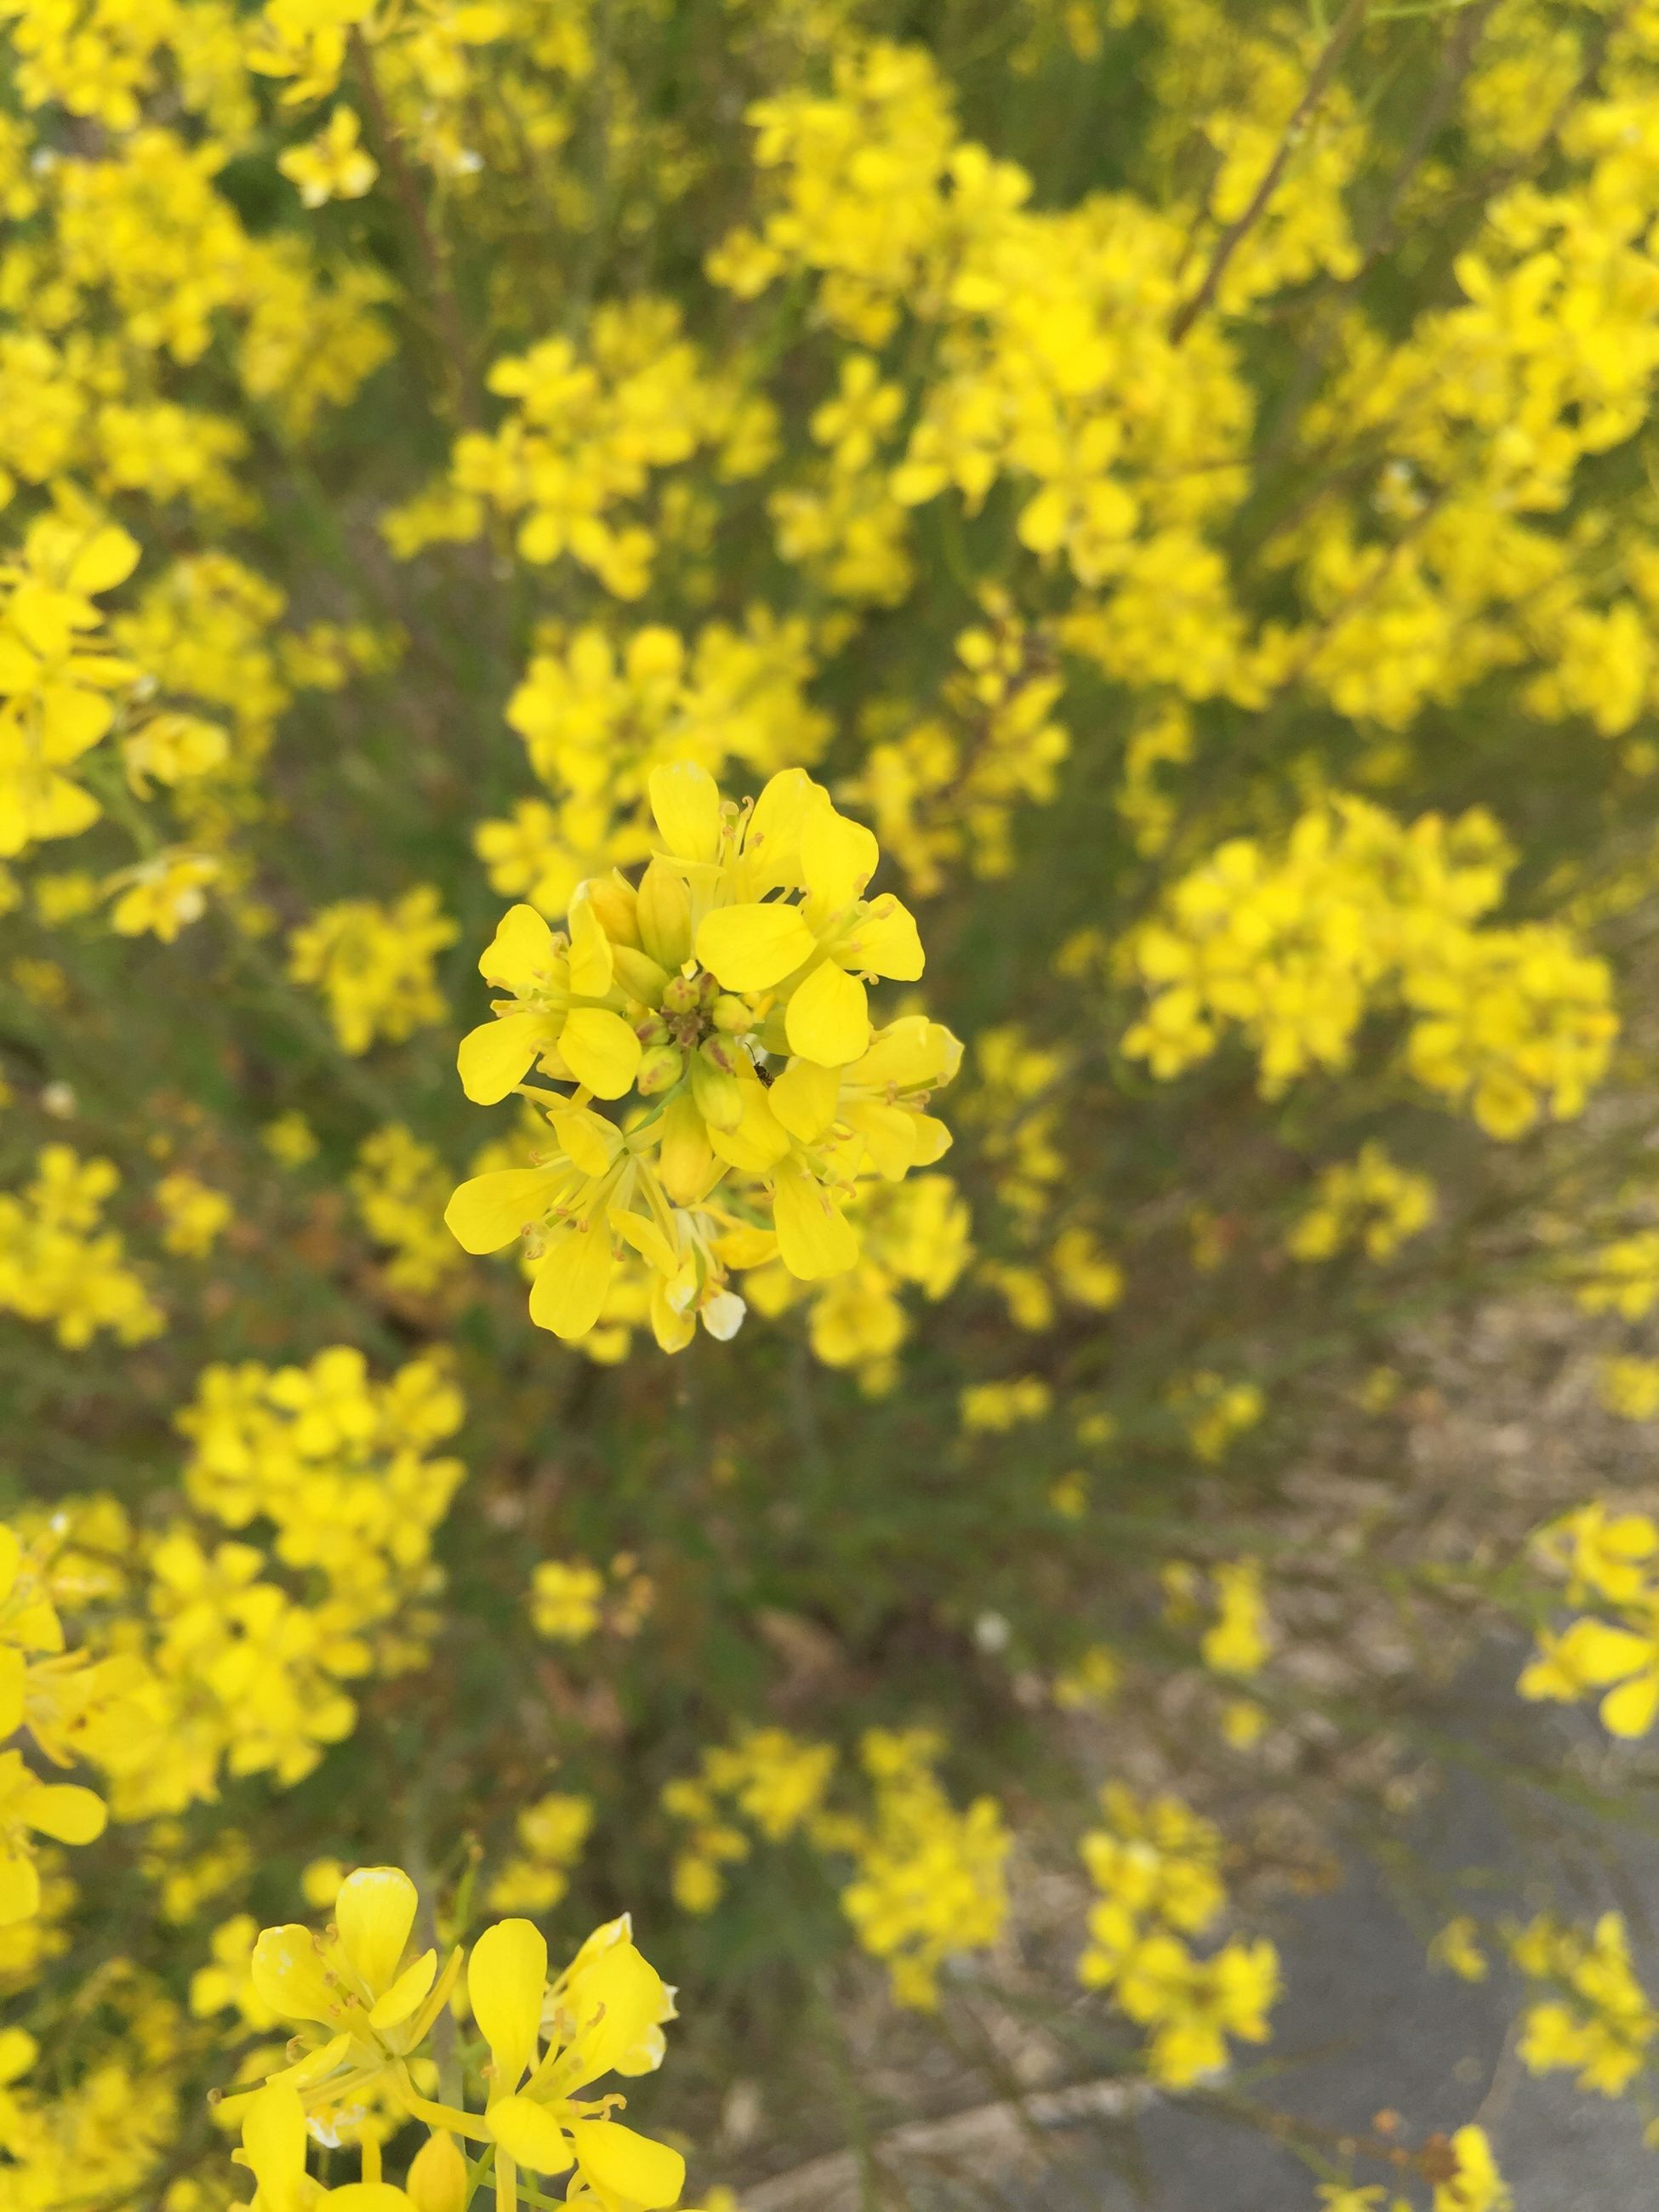 flower, yellow, freshness, fragility, growth, petal, beauty in nature, nature, blooming, flower head, blossom, in bloom, focus on foreground, plant, close-up, springtime, botany, outdoors, field, selective focus